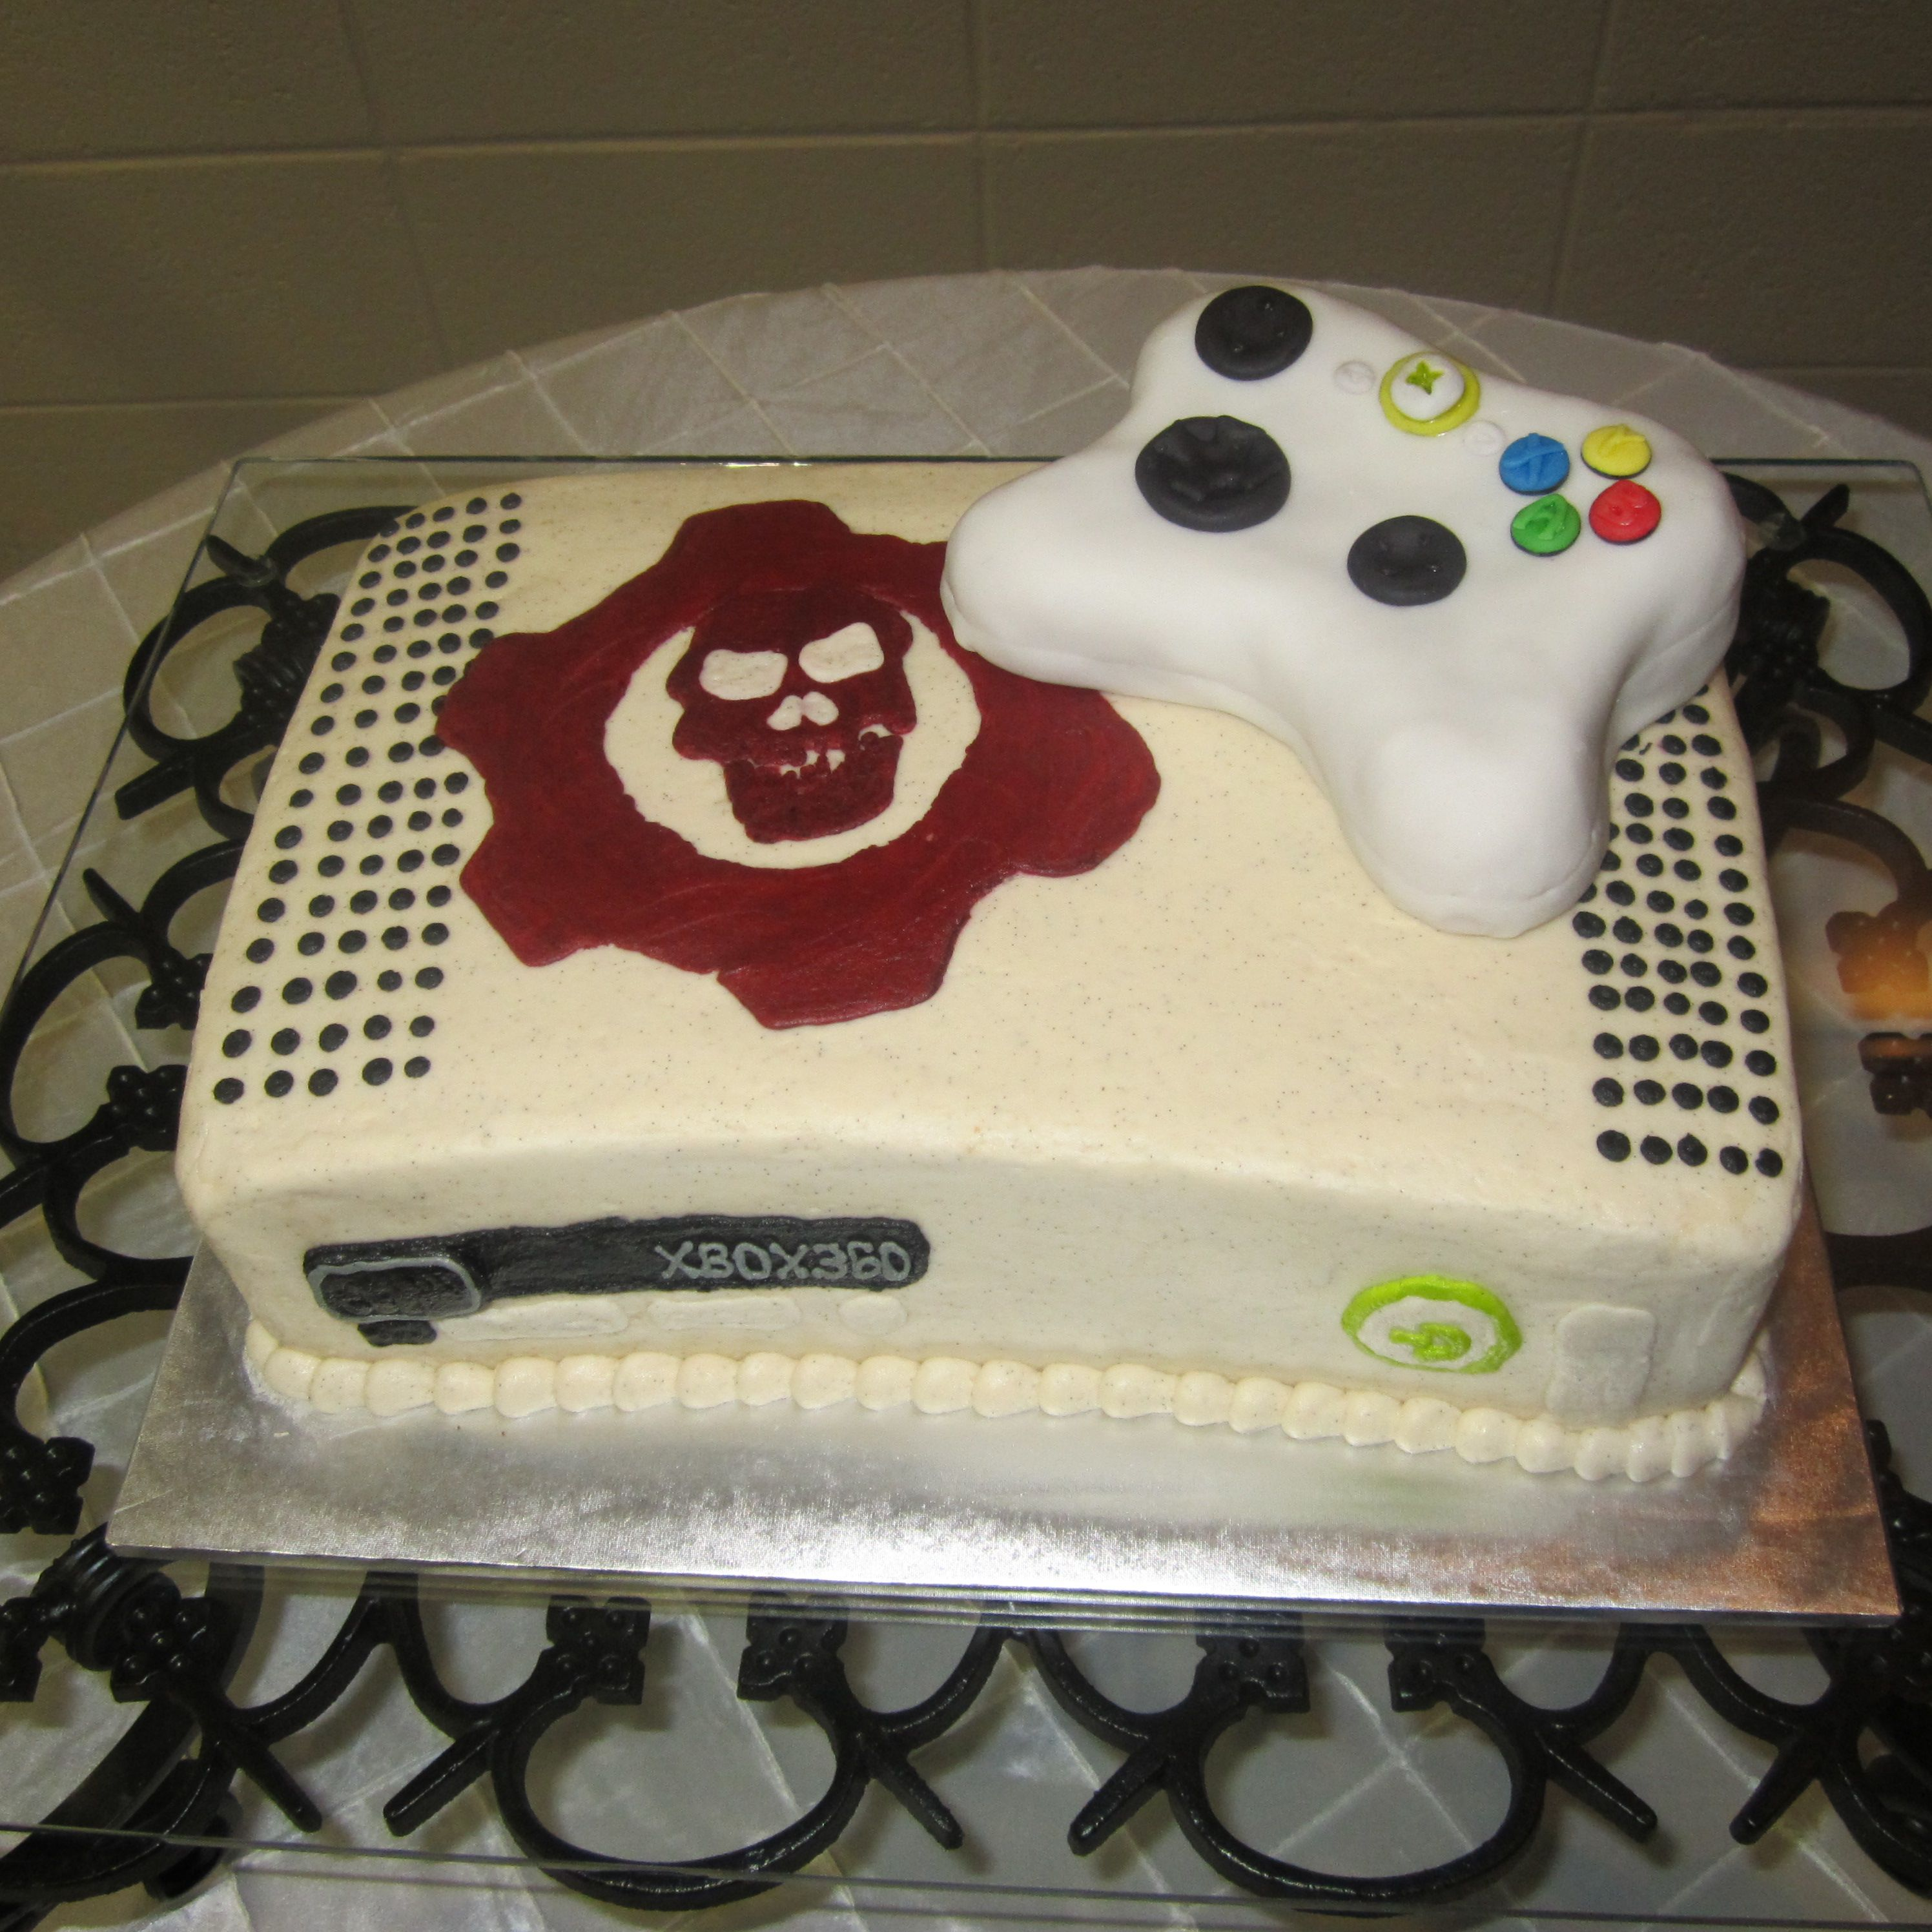 Gears Of War Xbox 360 Cake Tots Would Get For My Bday